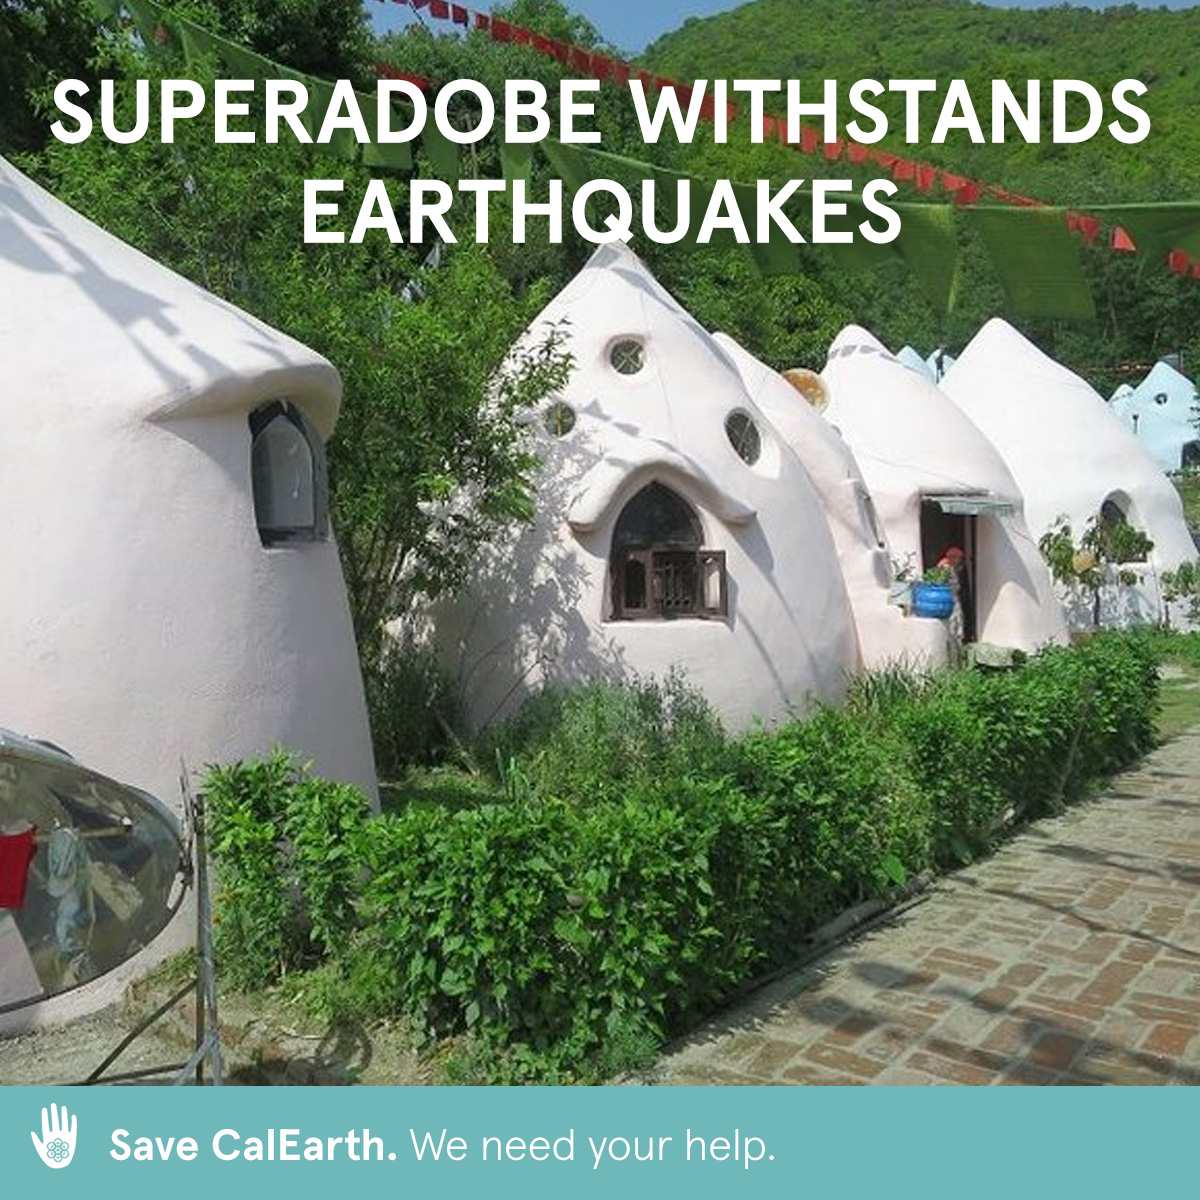 This orphanage in Nepal withstood a 7.6 earthquake on 25 April 2015. By supporting CalEarth, you are helping solve the global housing crisis.  calearth.org/donate   #calearth #savecalearth #superadobe